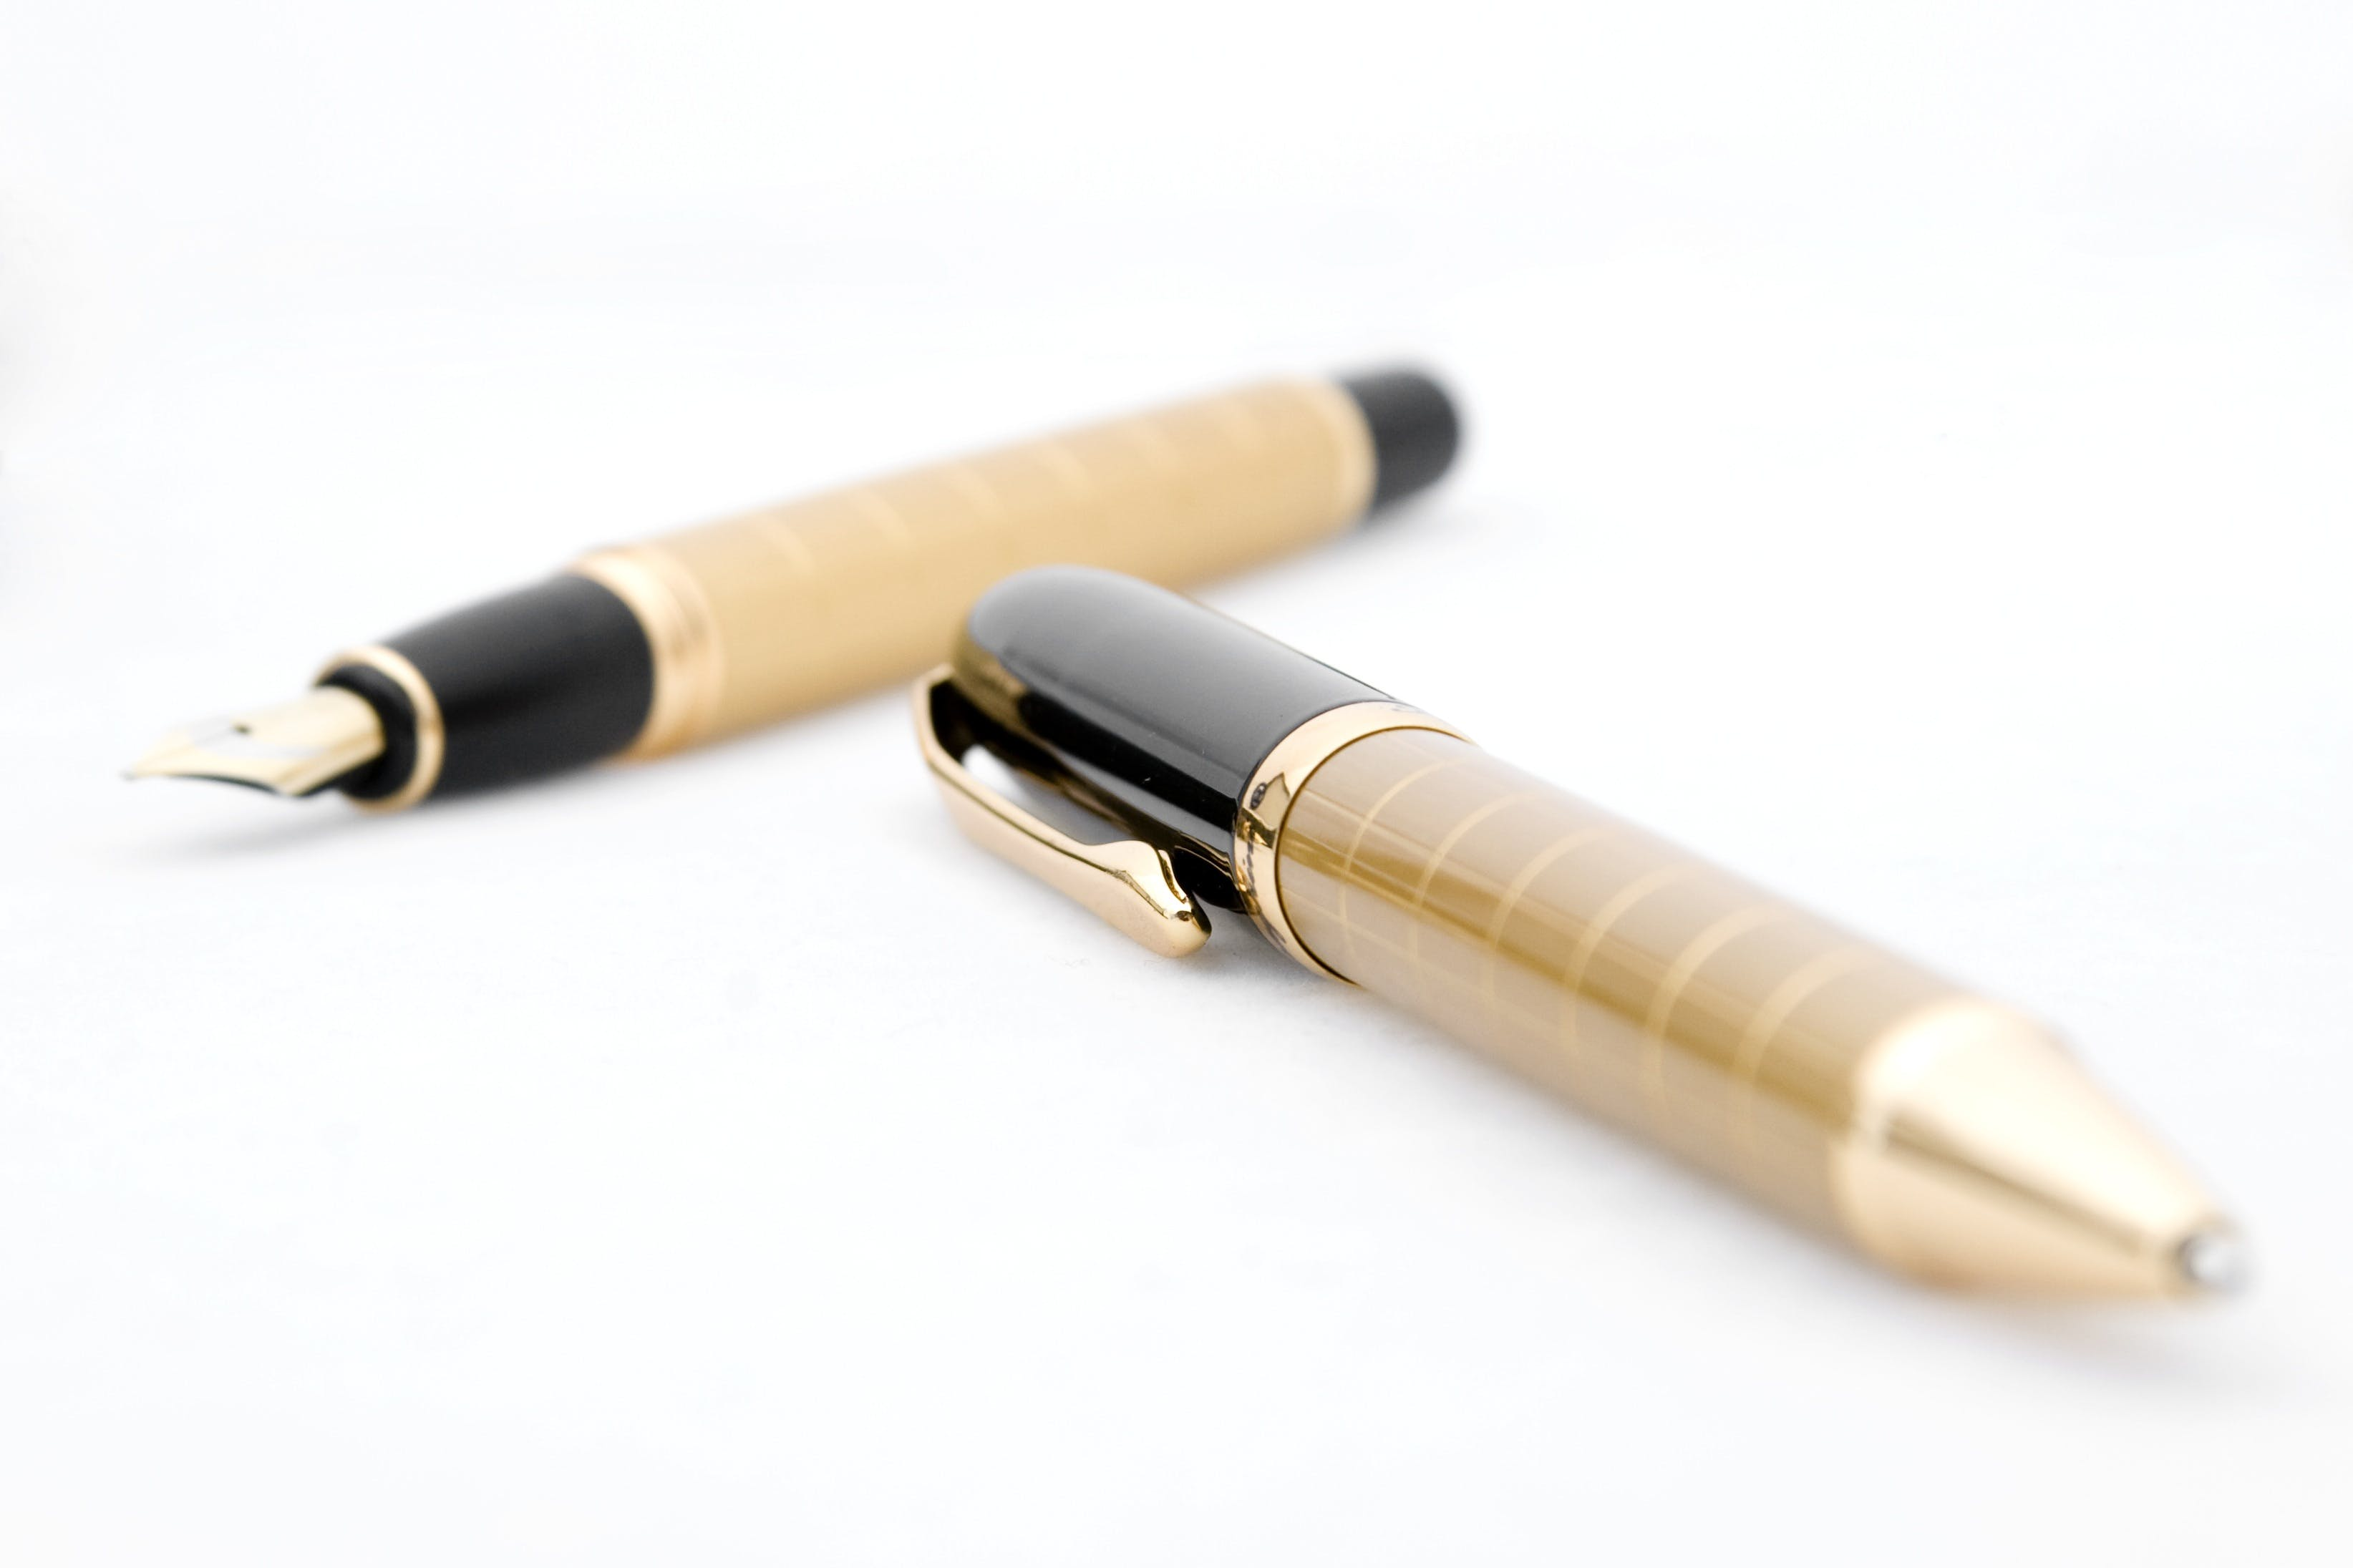 Free stock photo of pens, black, gold, fountain pens